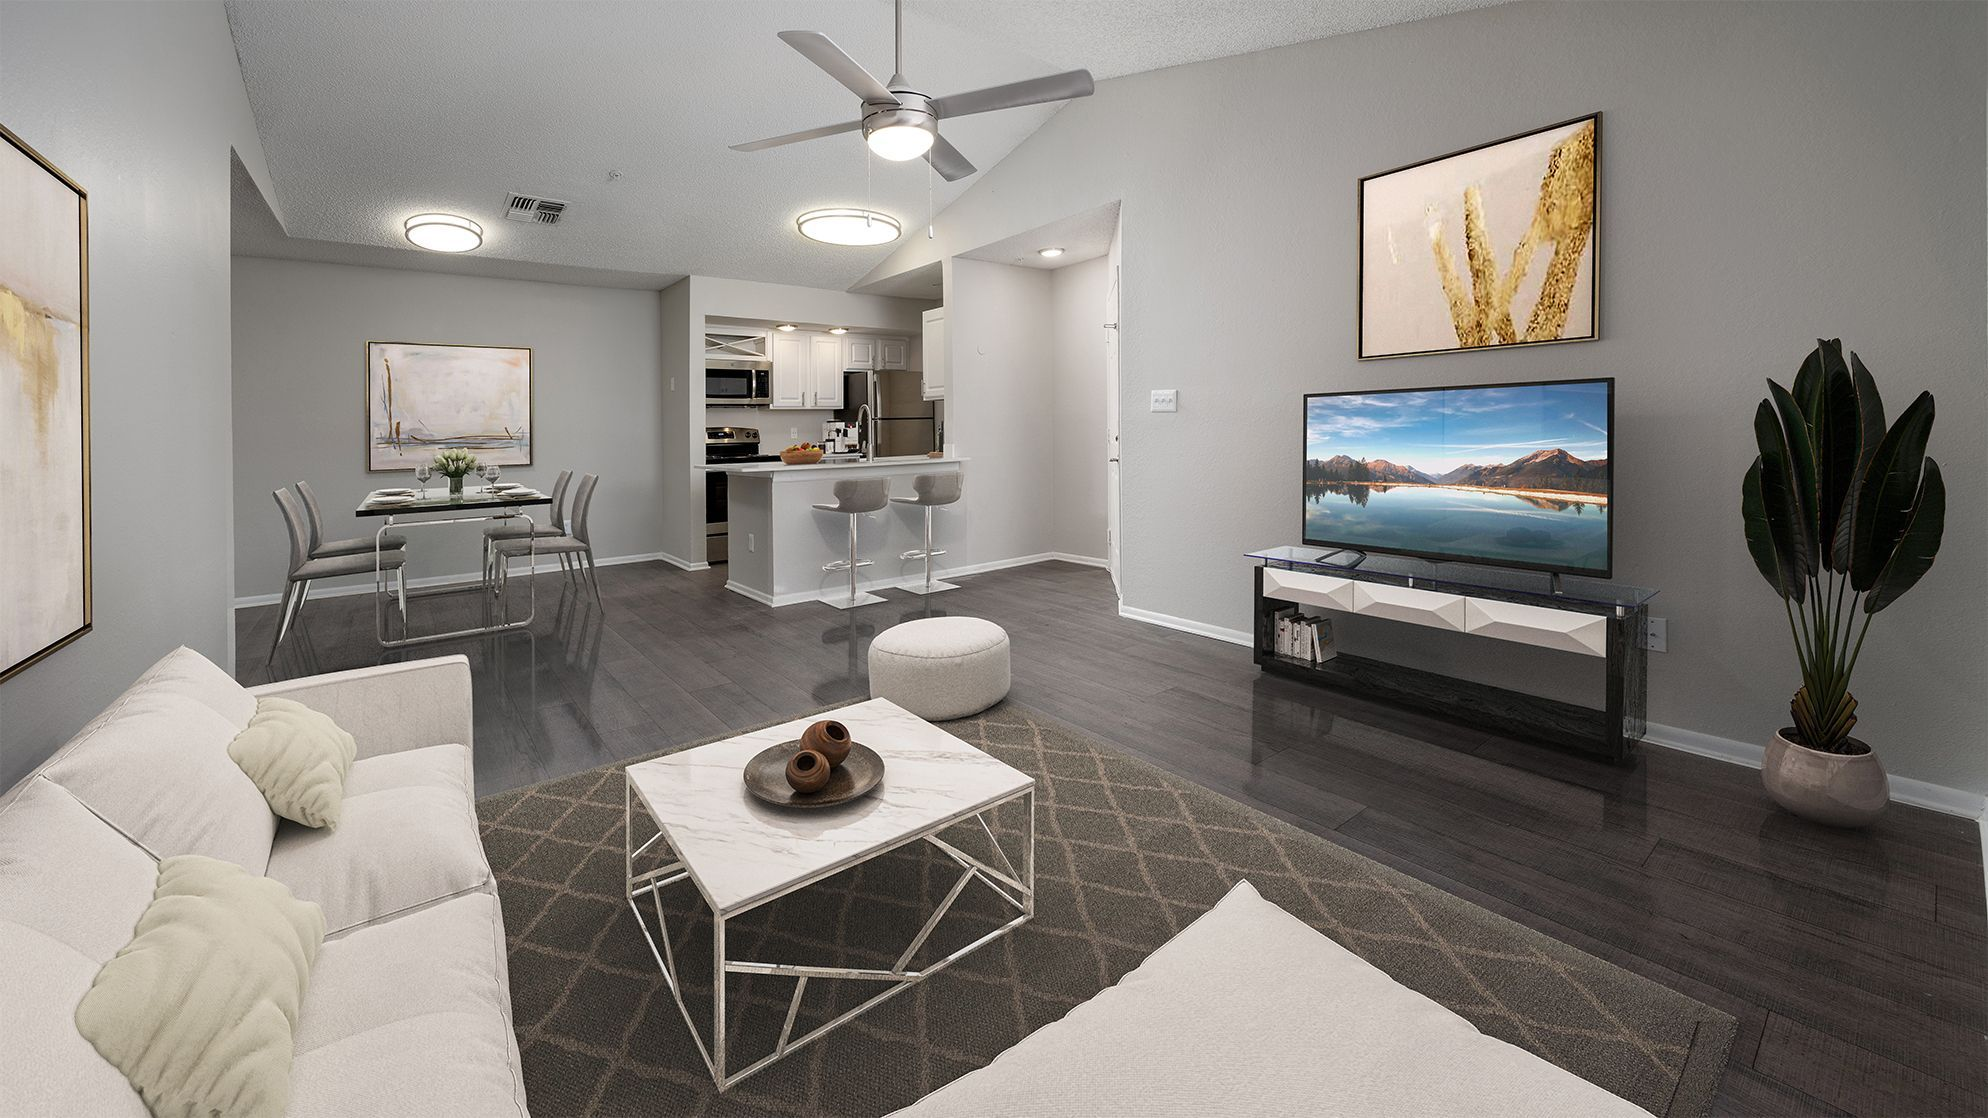 Apartment living area with seating and view of kitchen